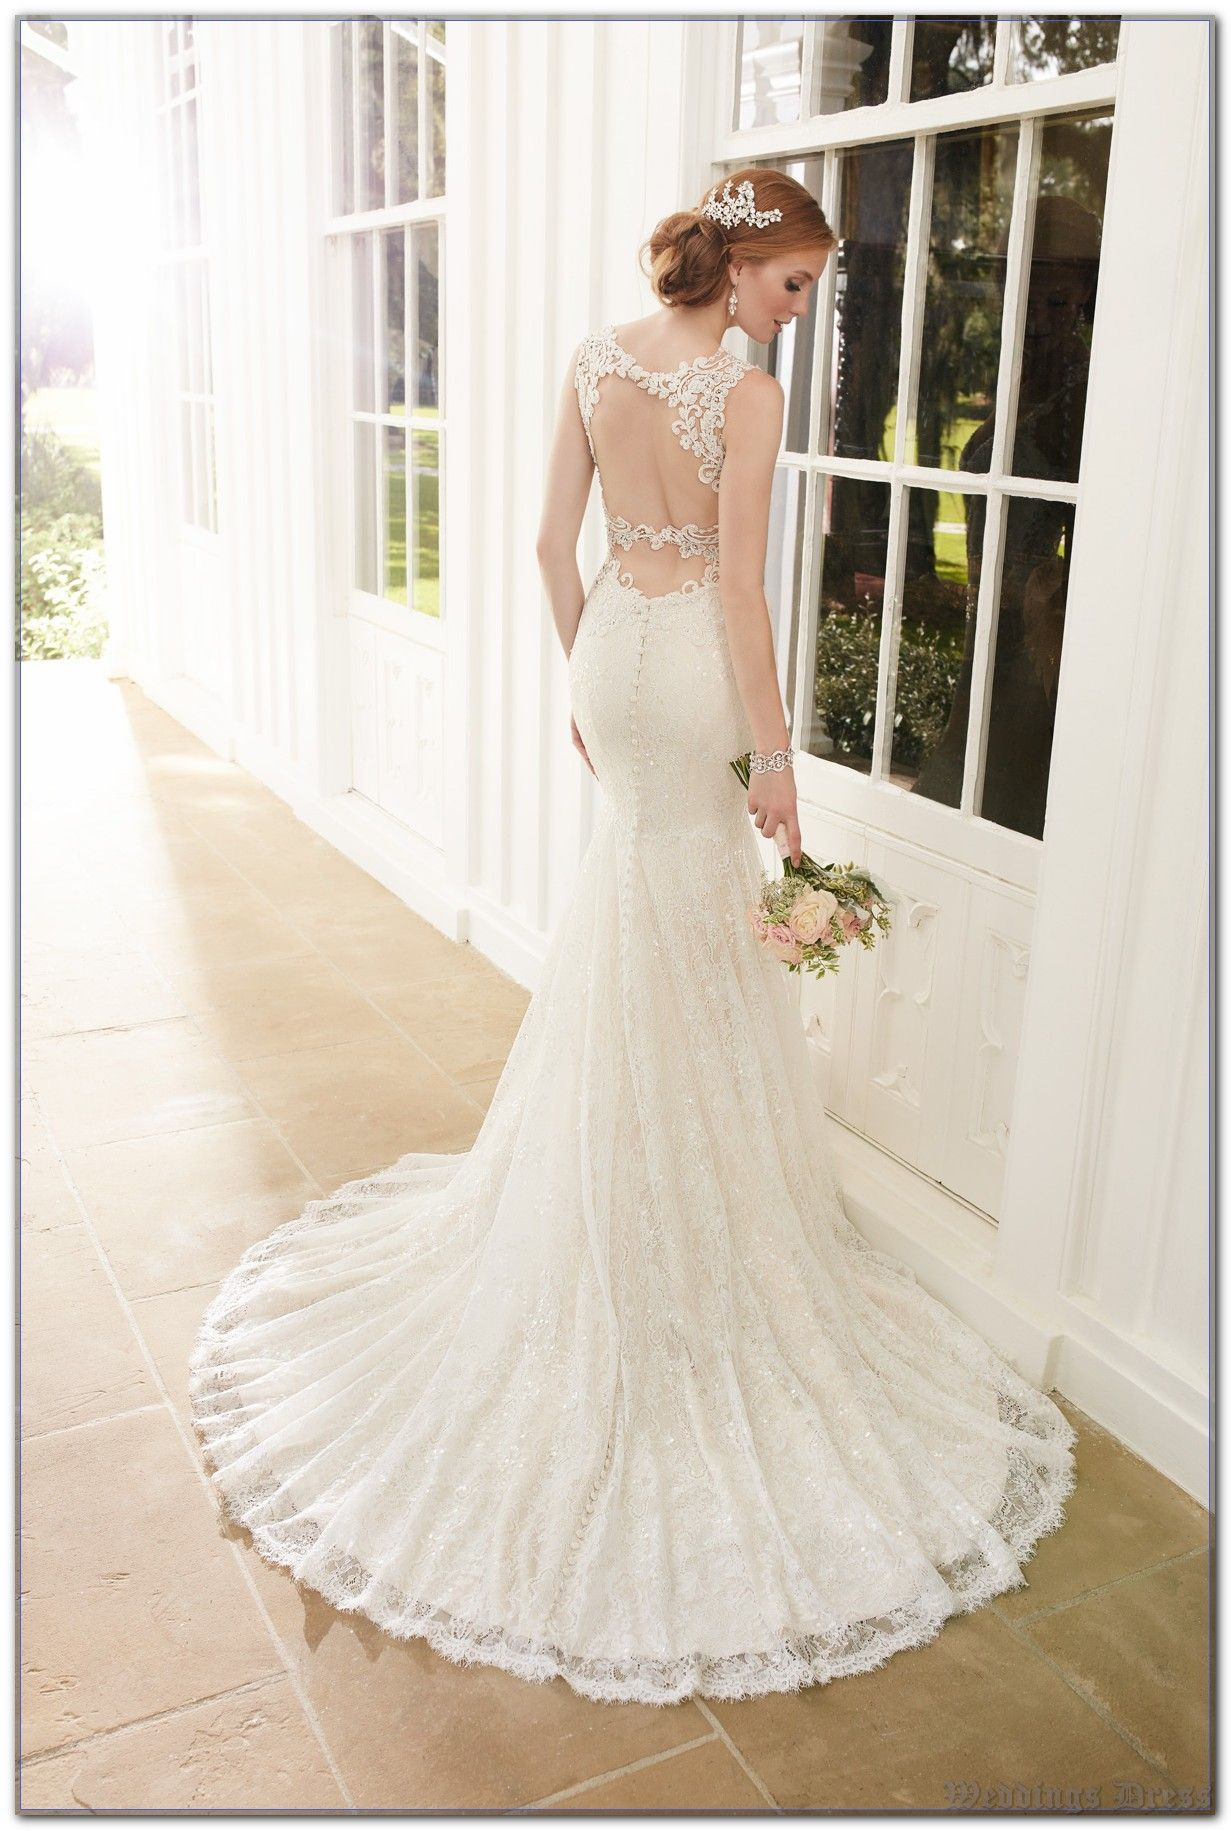 How To Win Friends And Influence People with Weddings Dress